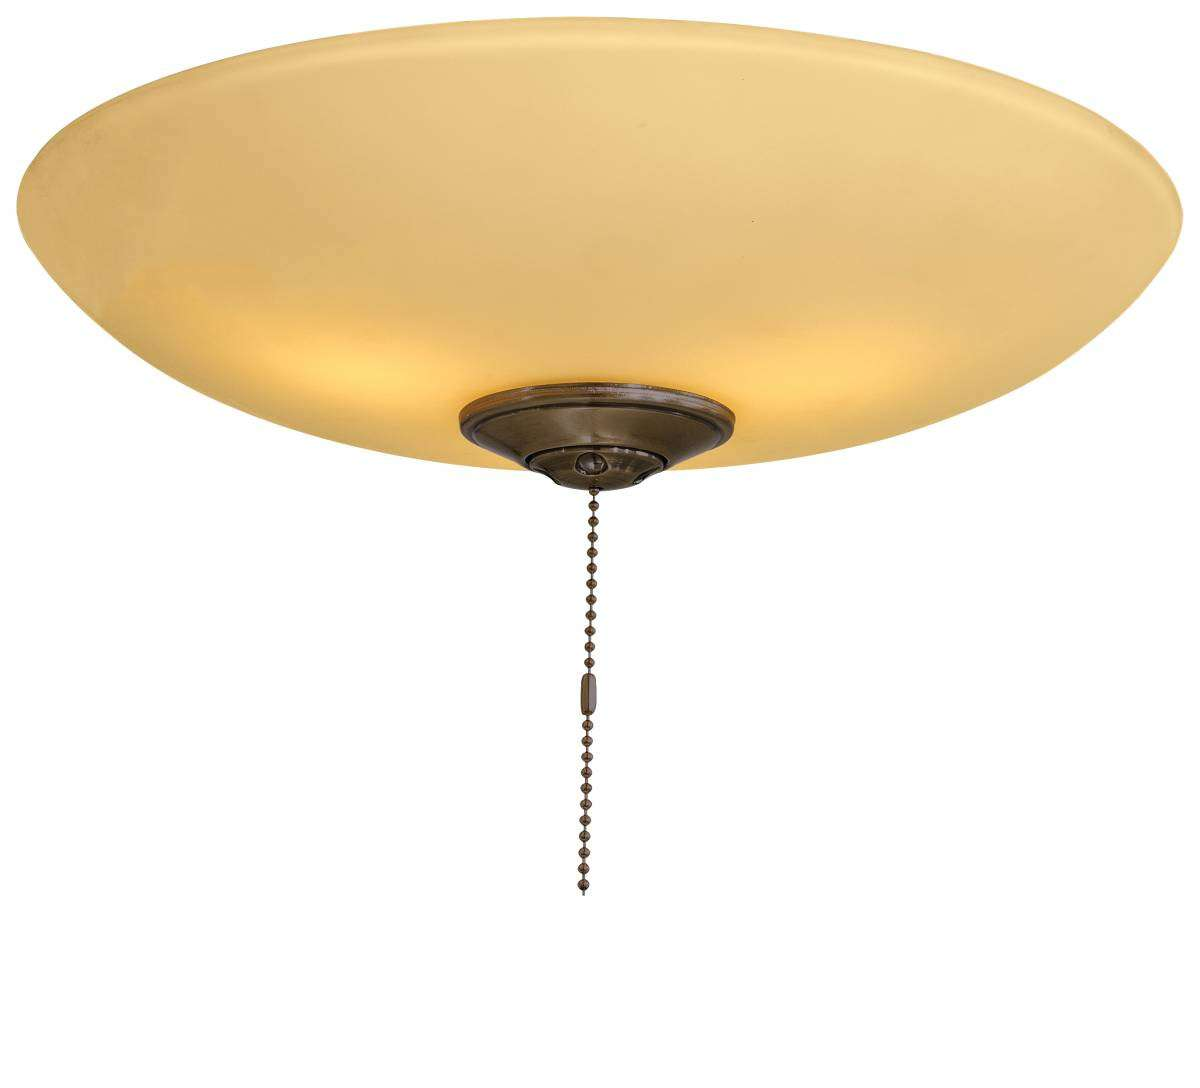 Minka Aire K9525-2 Single Bowl No specific finish Ceiling Fan Light Fixture